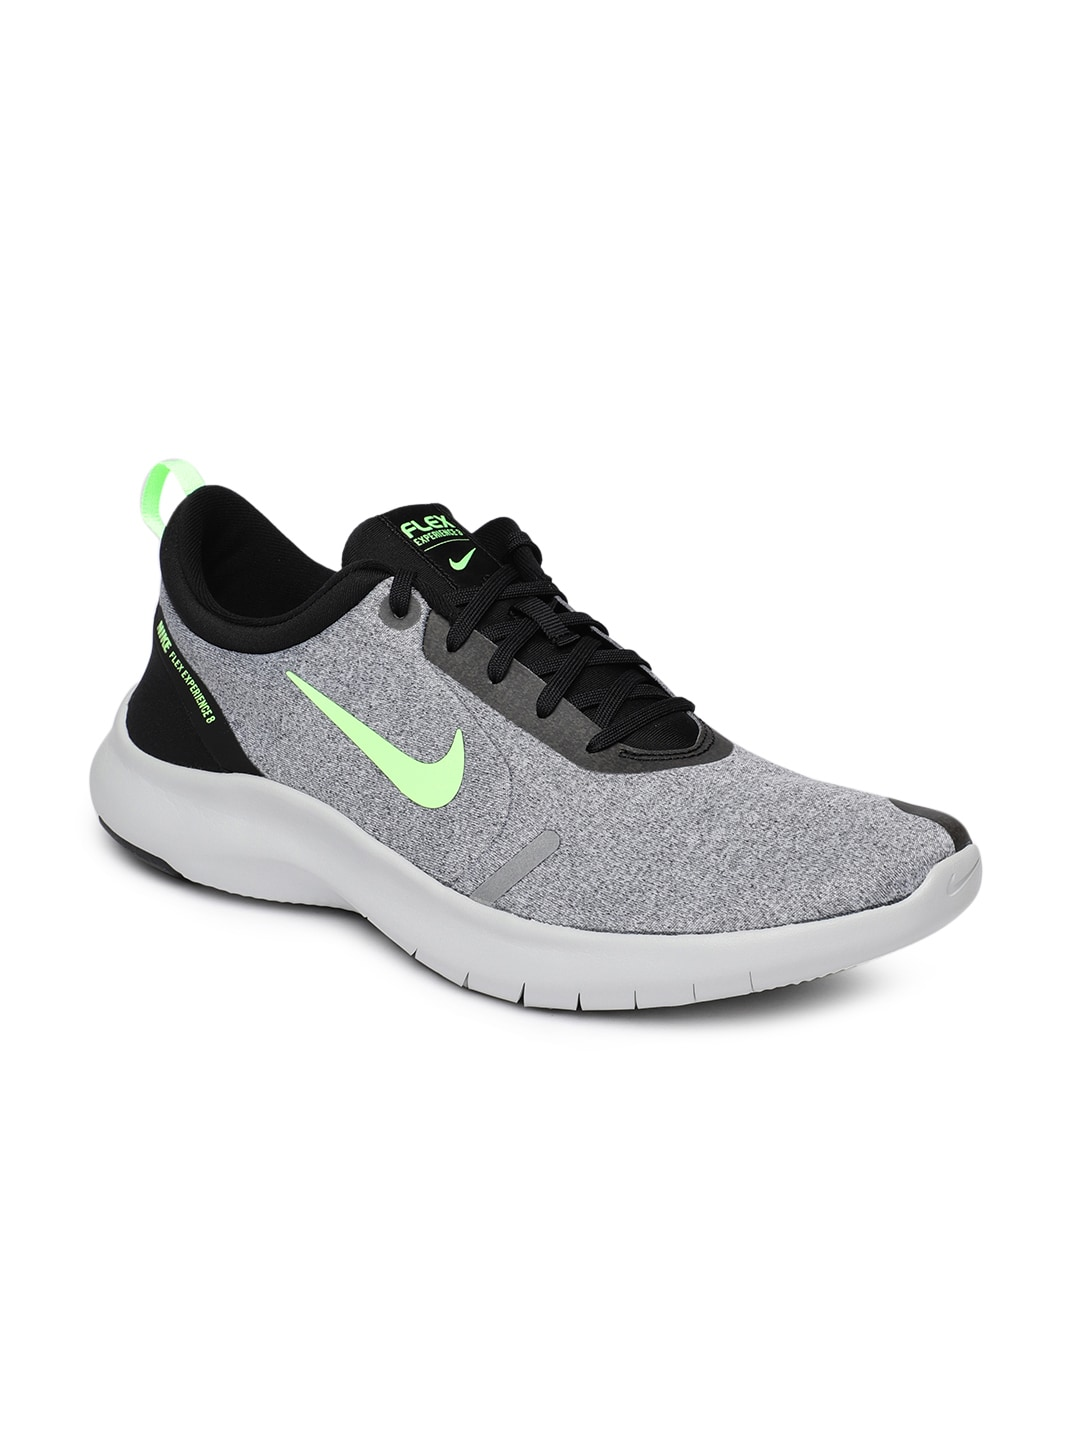 timeless design 241a1 3ebdd Nike Shoes - Buy Nike Shoes for Men, Women   Kids Online   Myntra